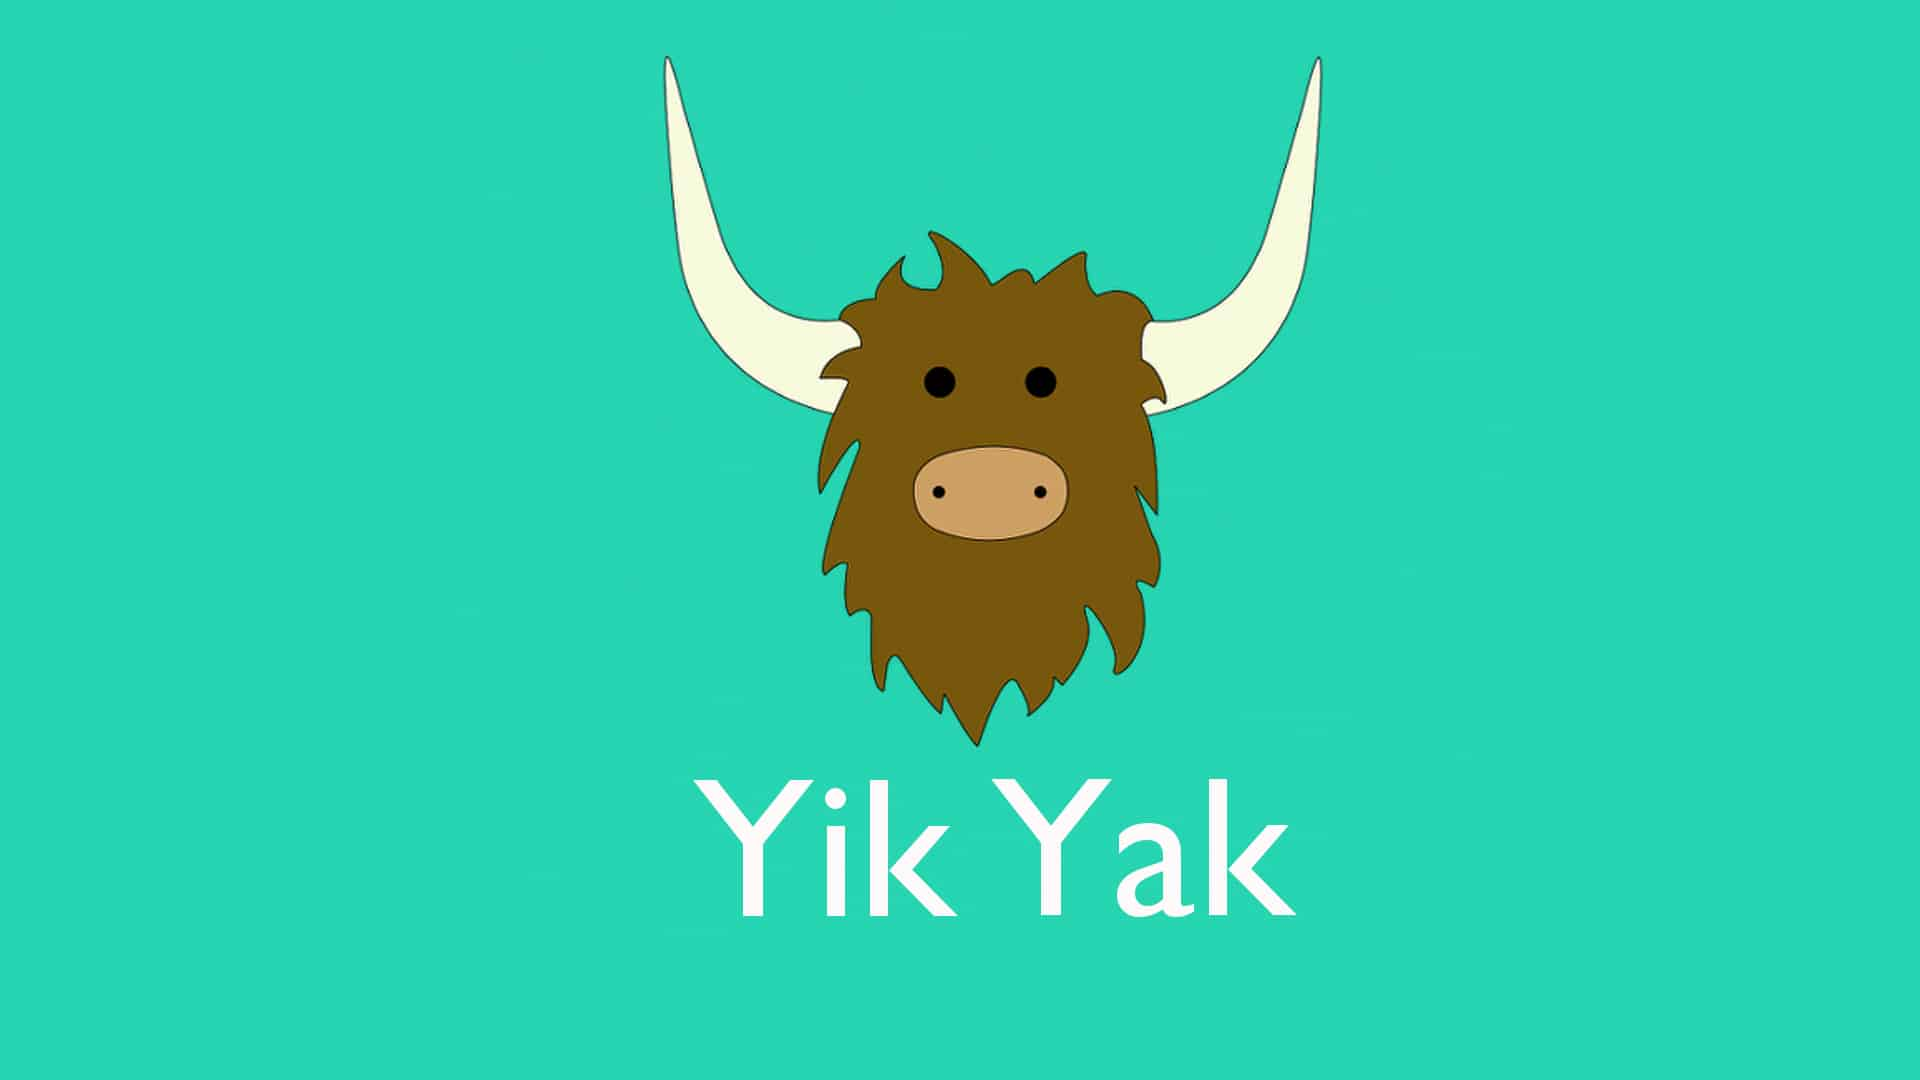 yik yak large